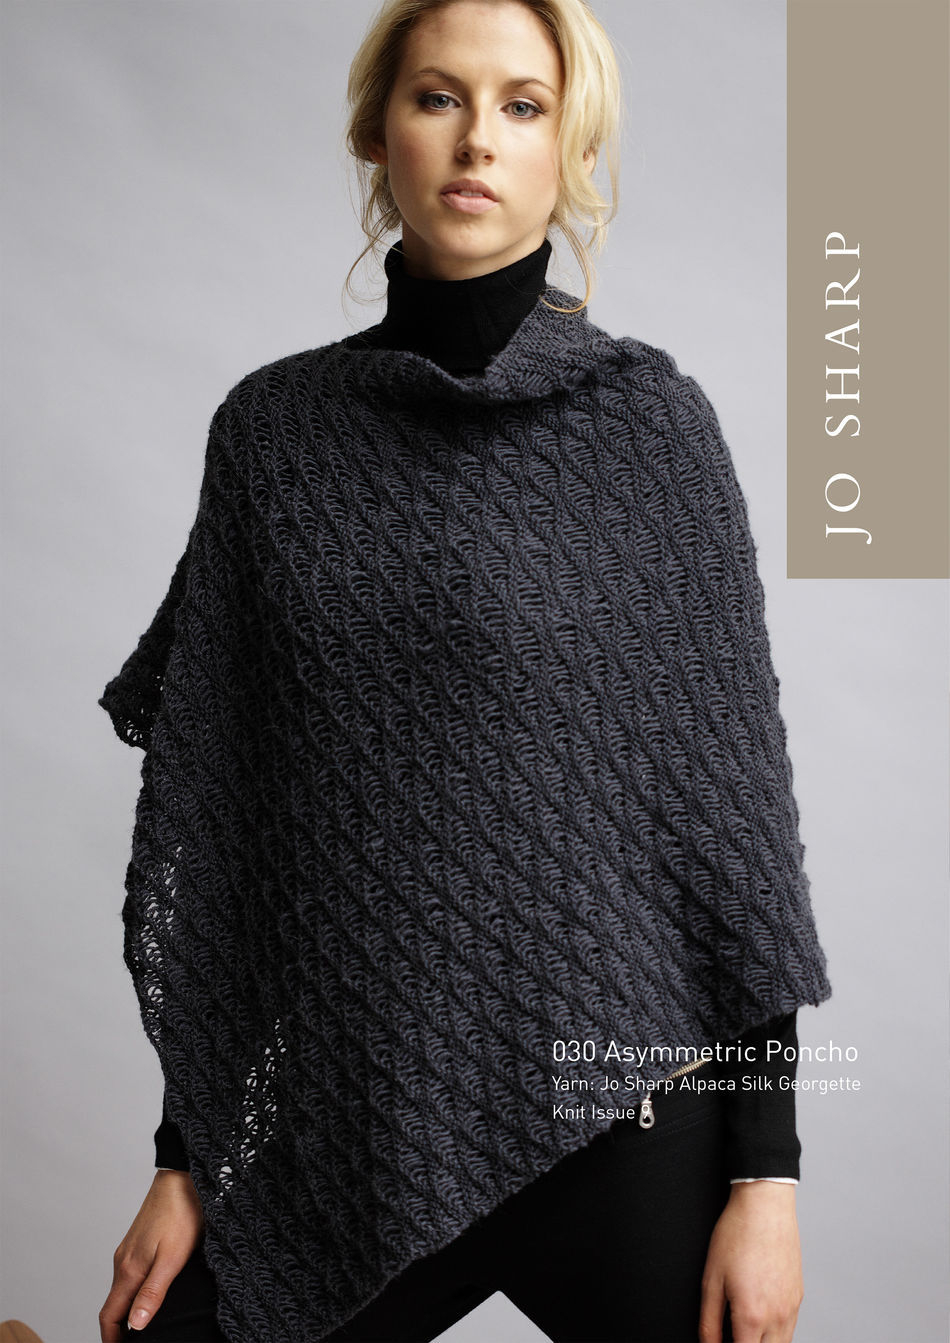 Poncho Pattern Knit Jo Sharp Asymmetric Poncho Pattern Knitting Pattern